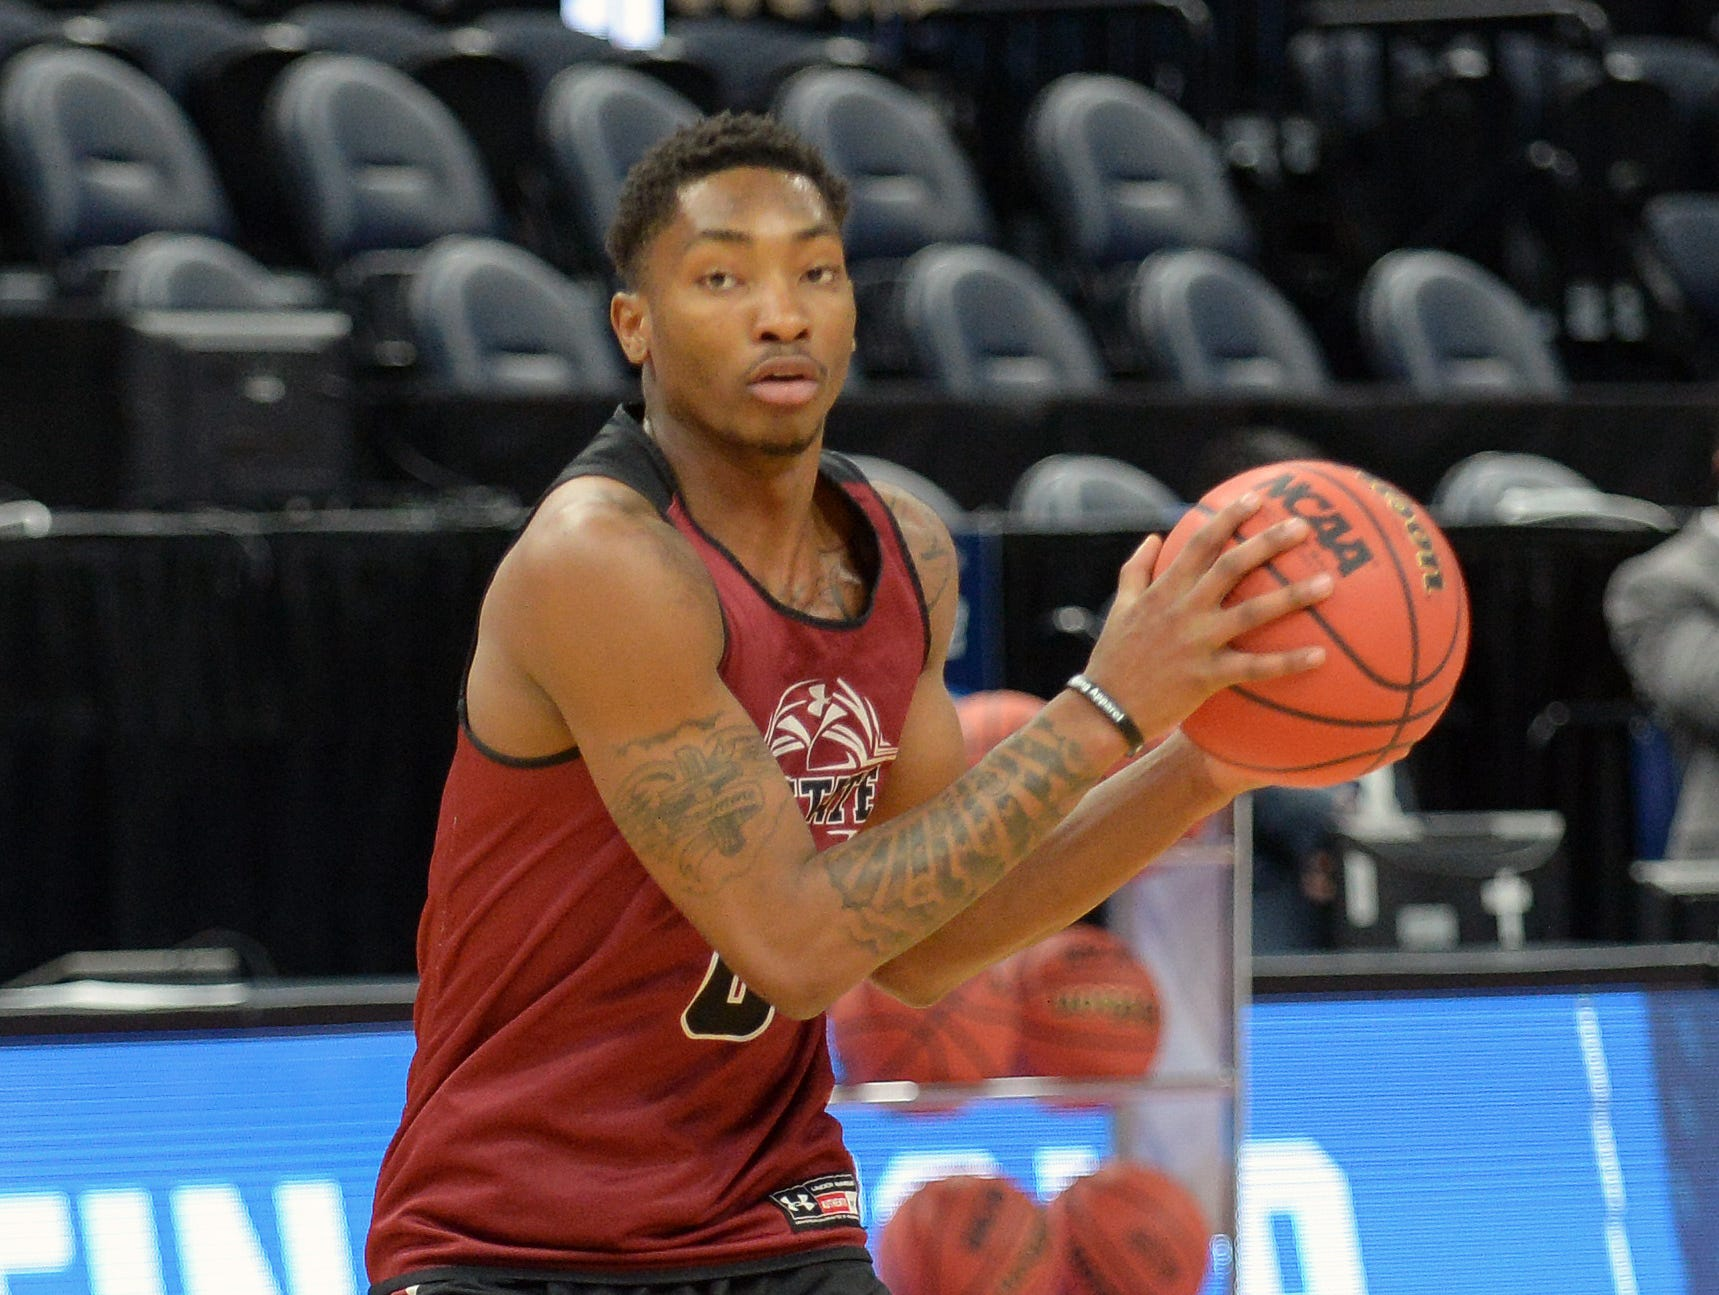 March 20, 2019; Salt Lake City, UT, USA; New Mexico State Aggies forward Berrick JeanLouis (0) during practice before the first round of the 2019 NCAA Tournament at Vivint Smart Home Arena. Mandatory Credit: Gary A. Vasquez-USA TODAY Sports